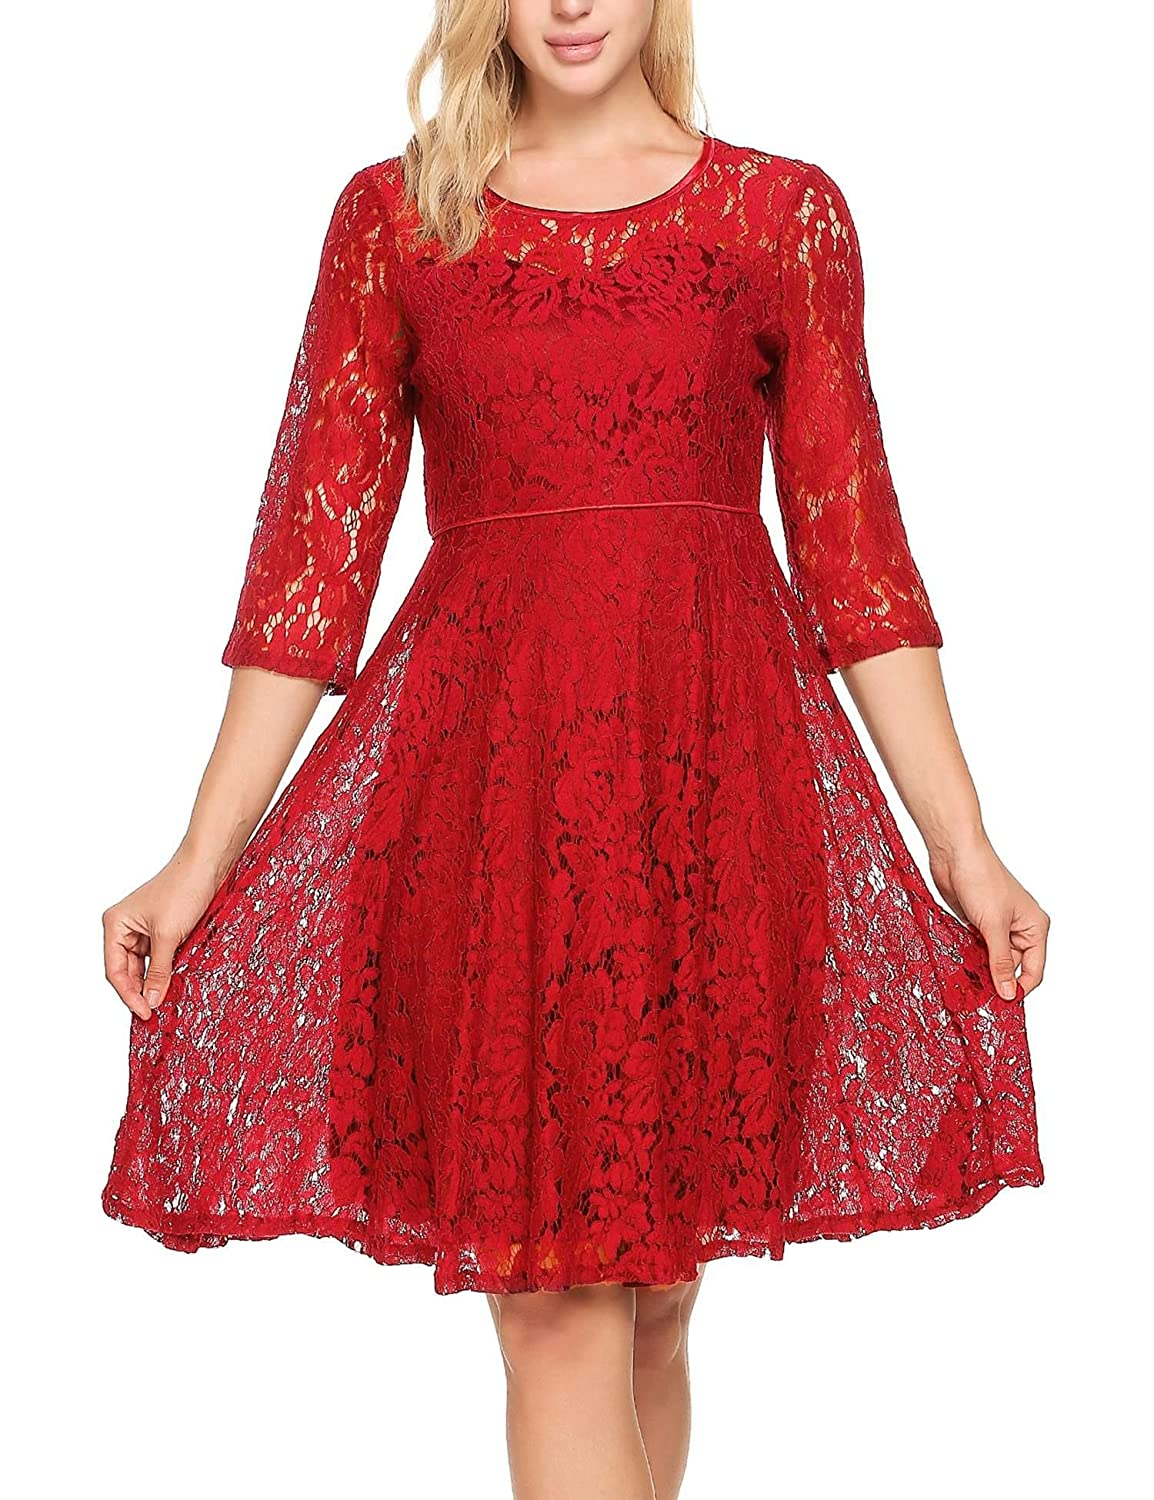 Meaneor Women 3/4 Sleeve Round Neck Floral Lace Swing Cocktail Party Mini Dress #MAH011707